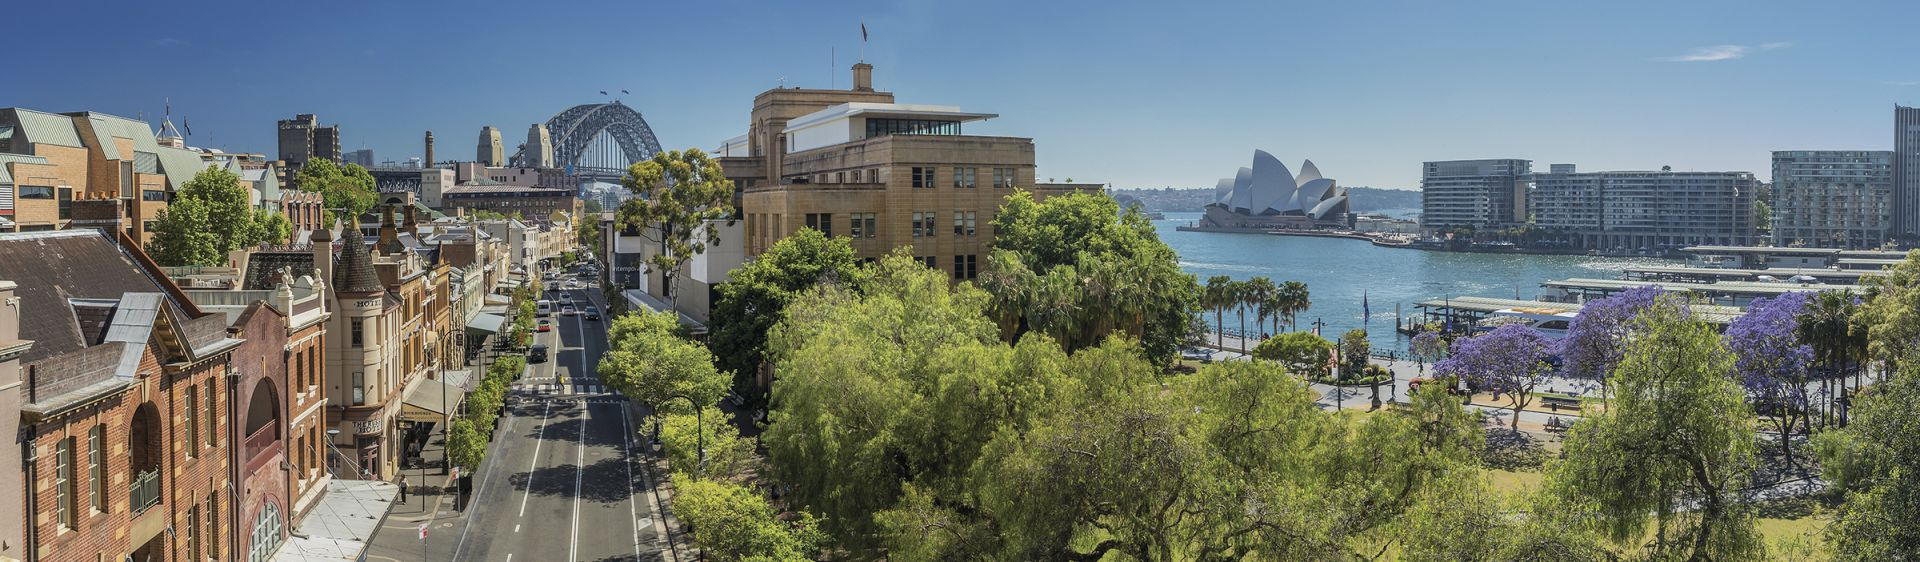 Scenic view of The Rocks and Circular Quay, Sydney